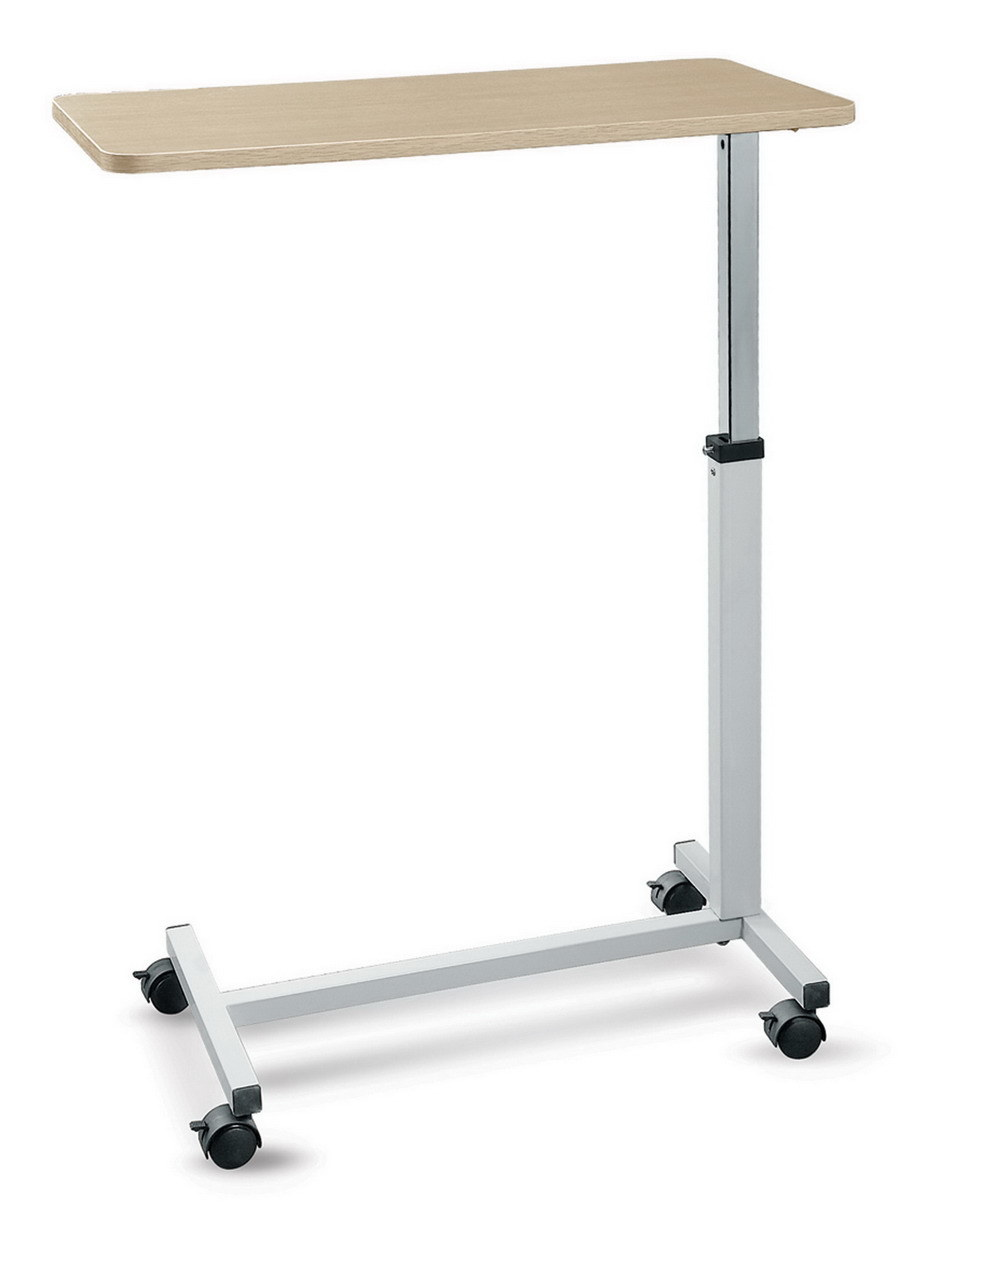 Hospital Over Bed Table - Home Medical Equipment - Compare Prices